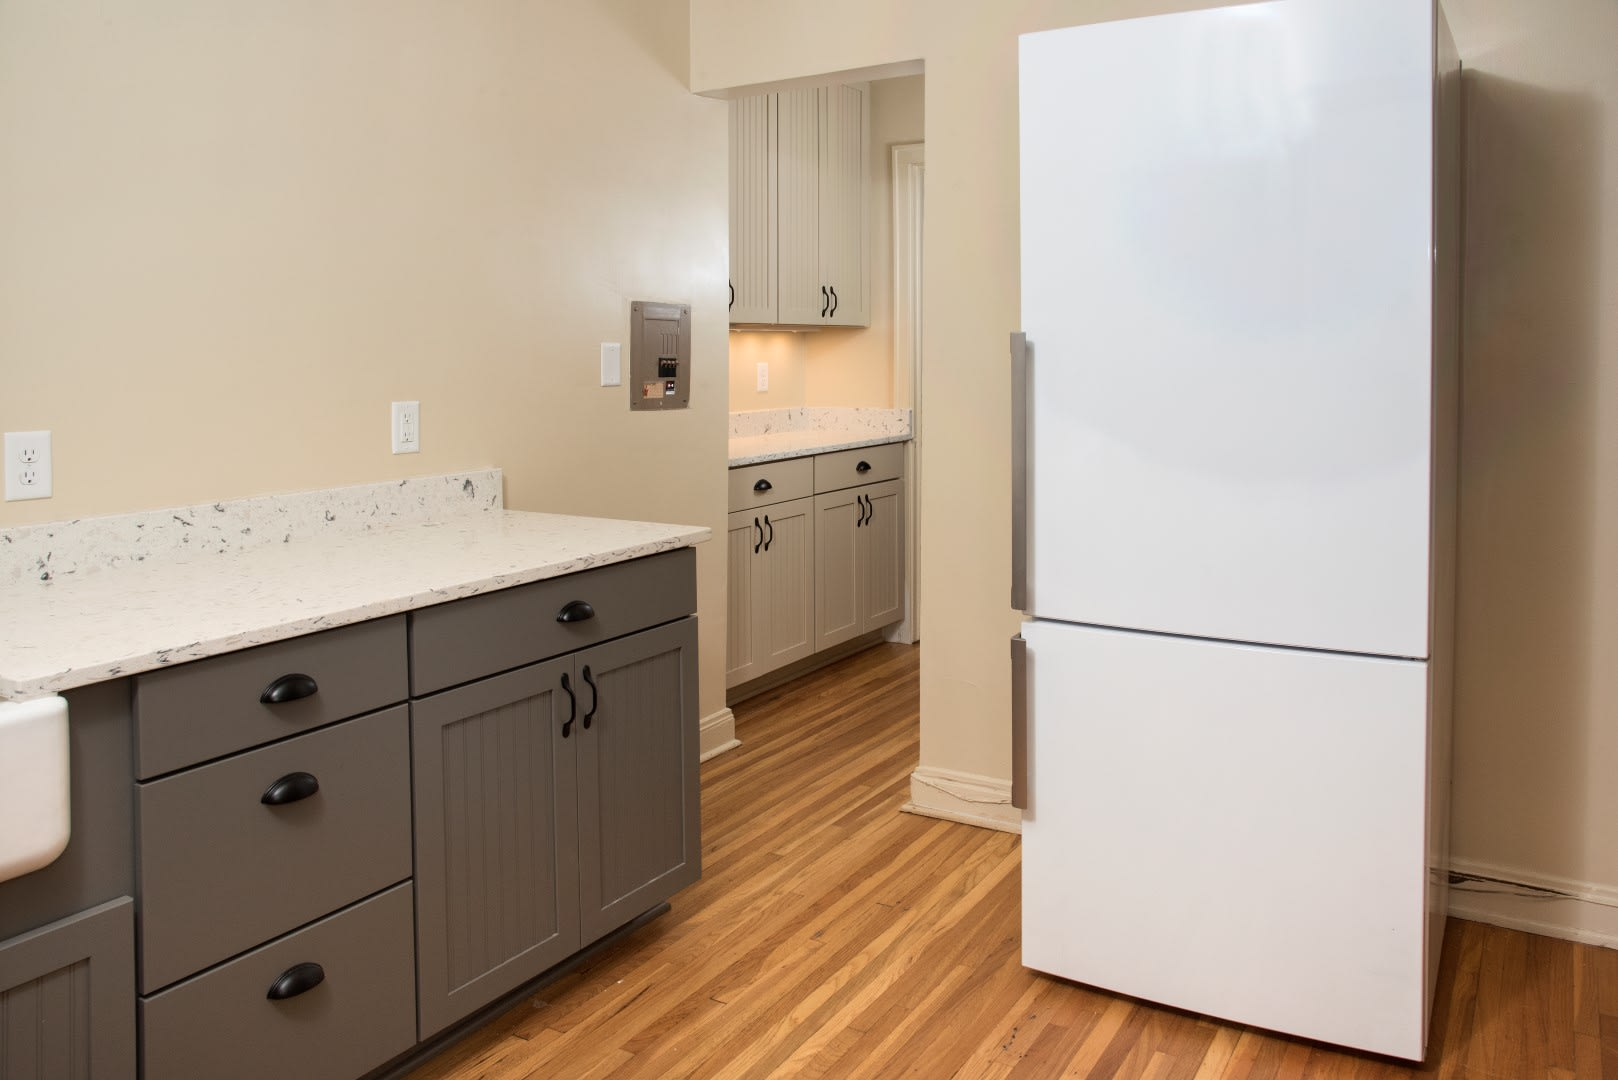 Family Sized Refrigerator with Freezer in Kitchen of 3500 Dupont